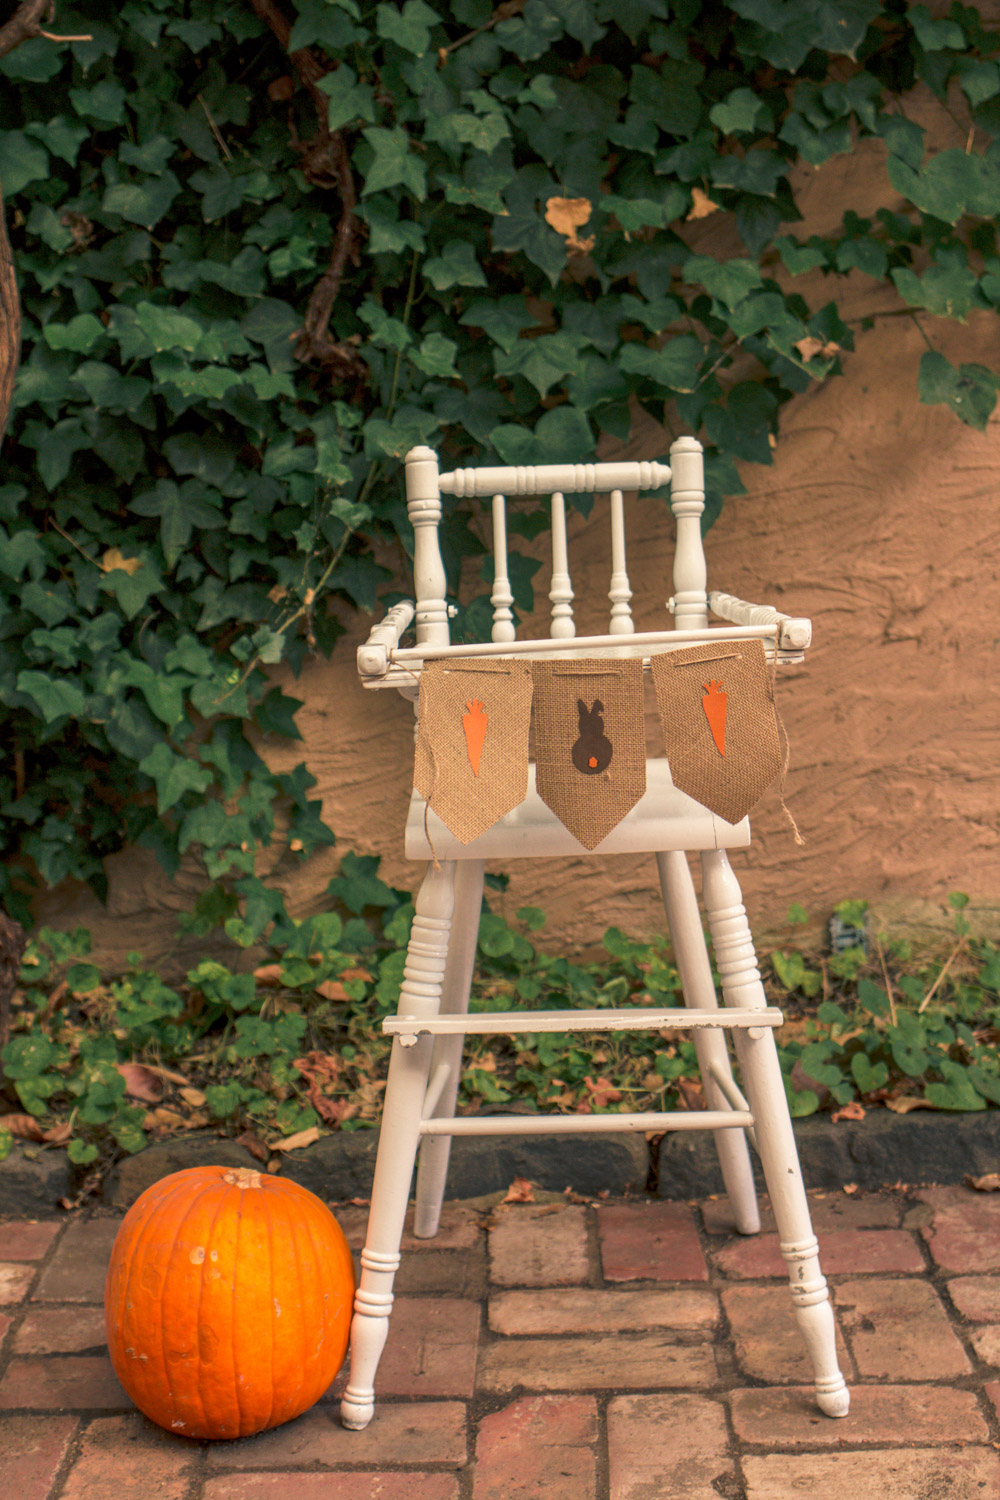 Vintage painted baby high chair decorated for autumn easter egg hunt with bunting, carrots and pumpkins